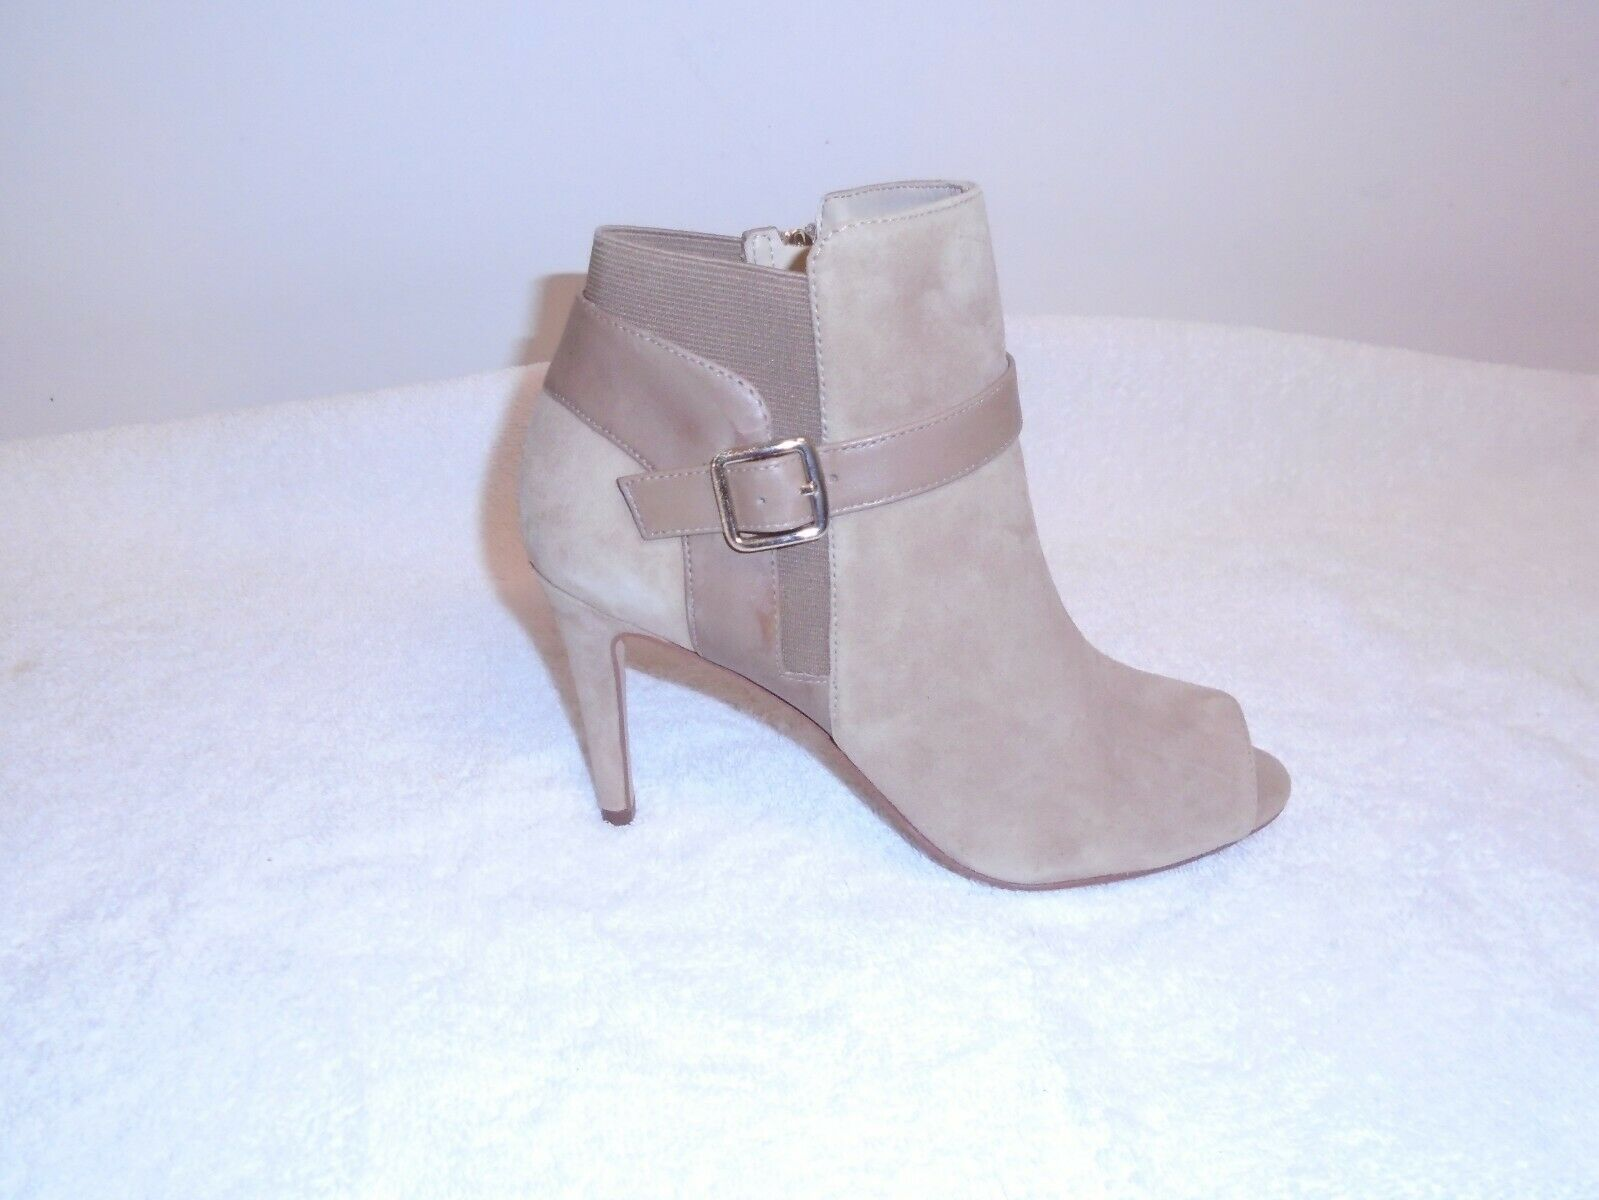 Marc Fisher  Suede Peep-toe Ankle Boots - Shimmee  light natural  10w. new